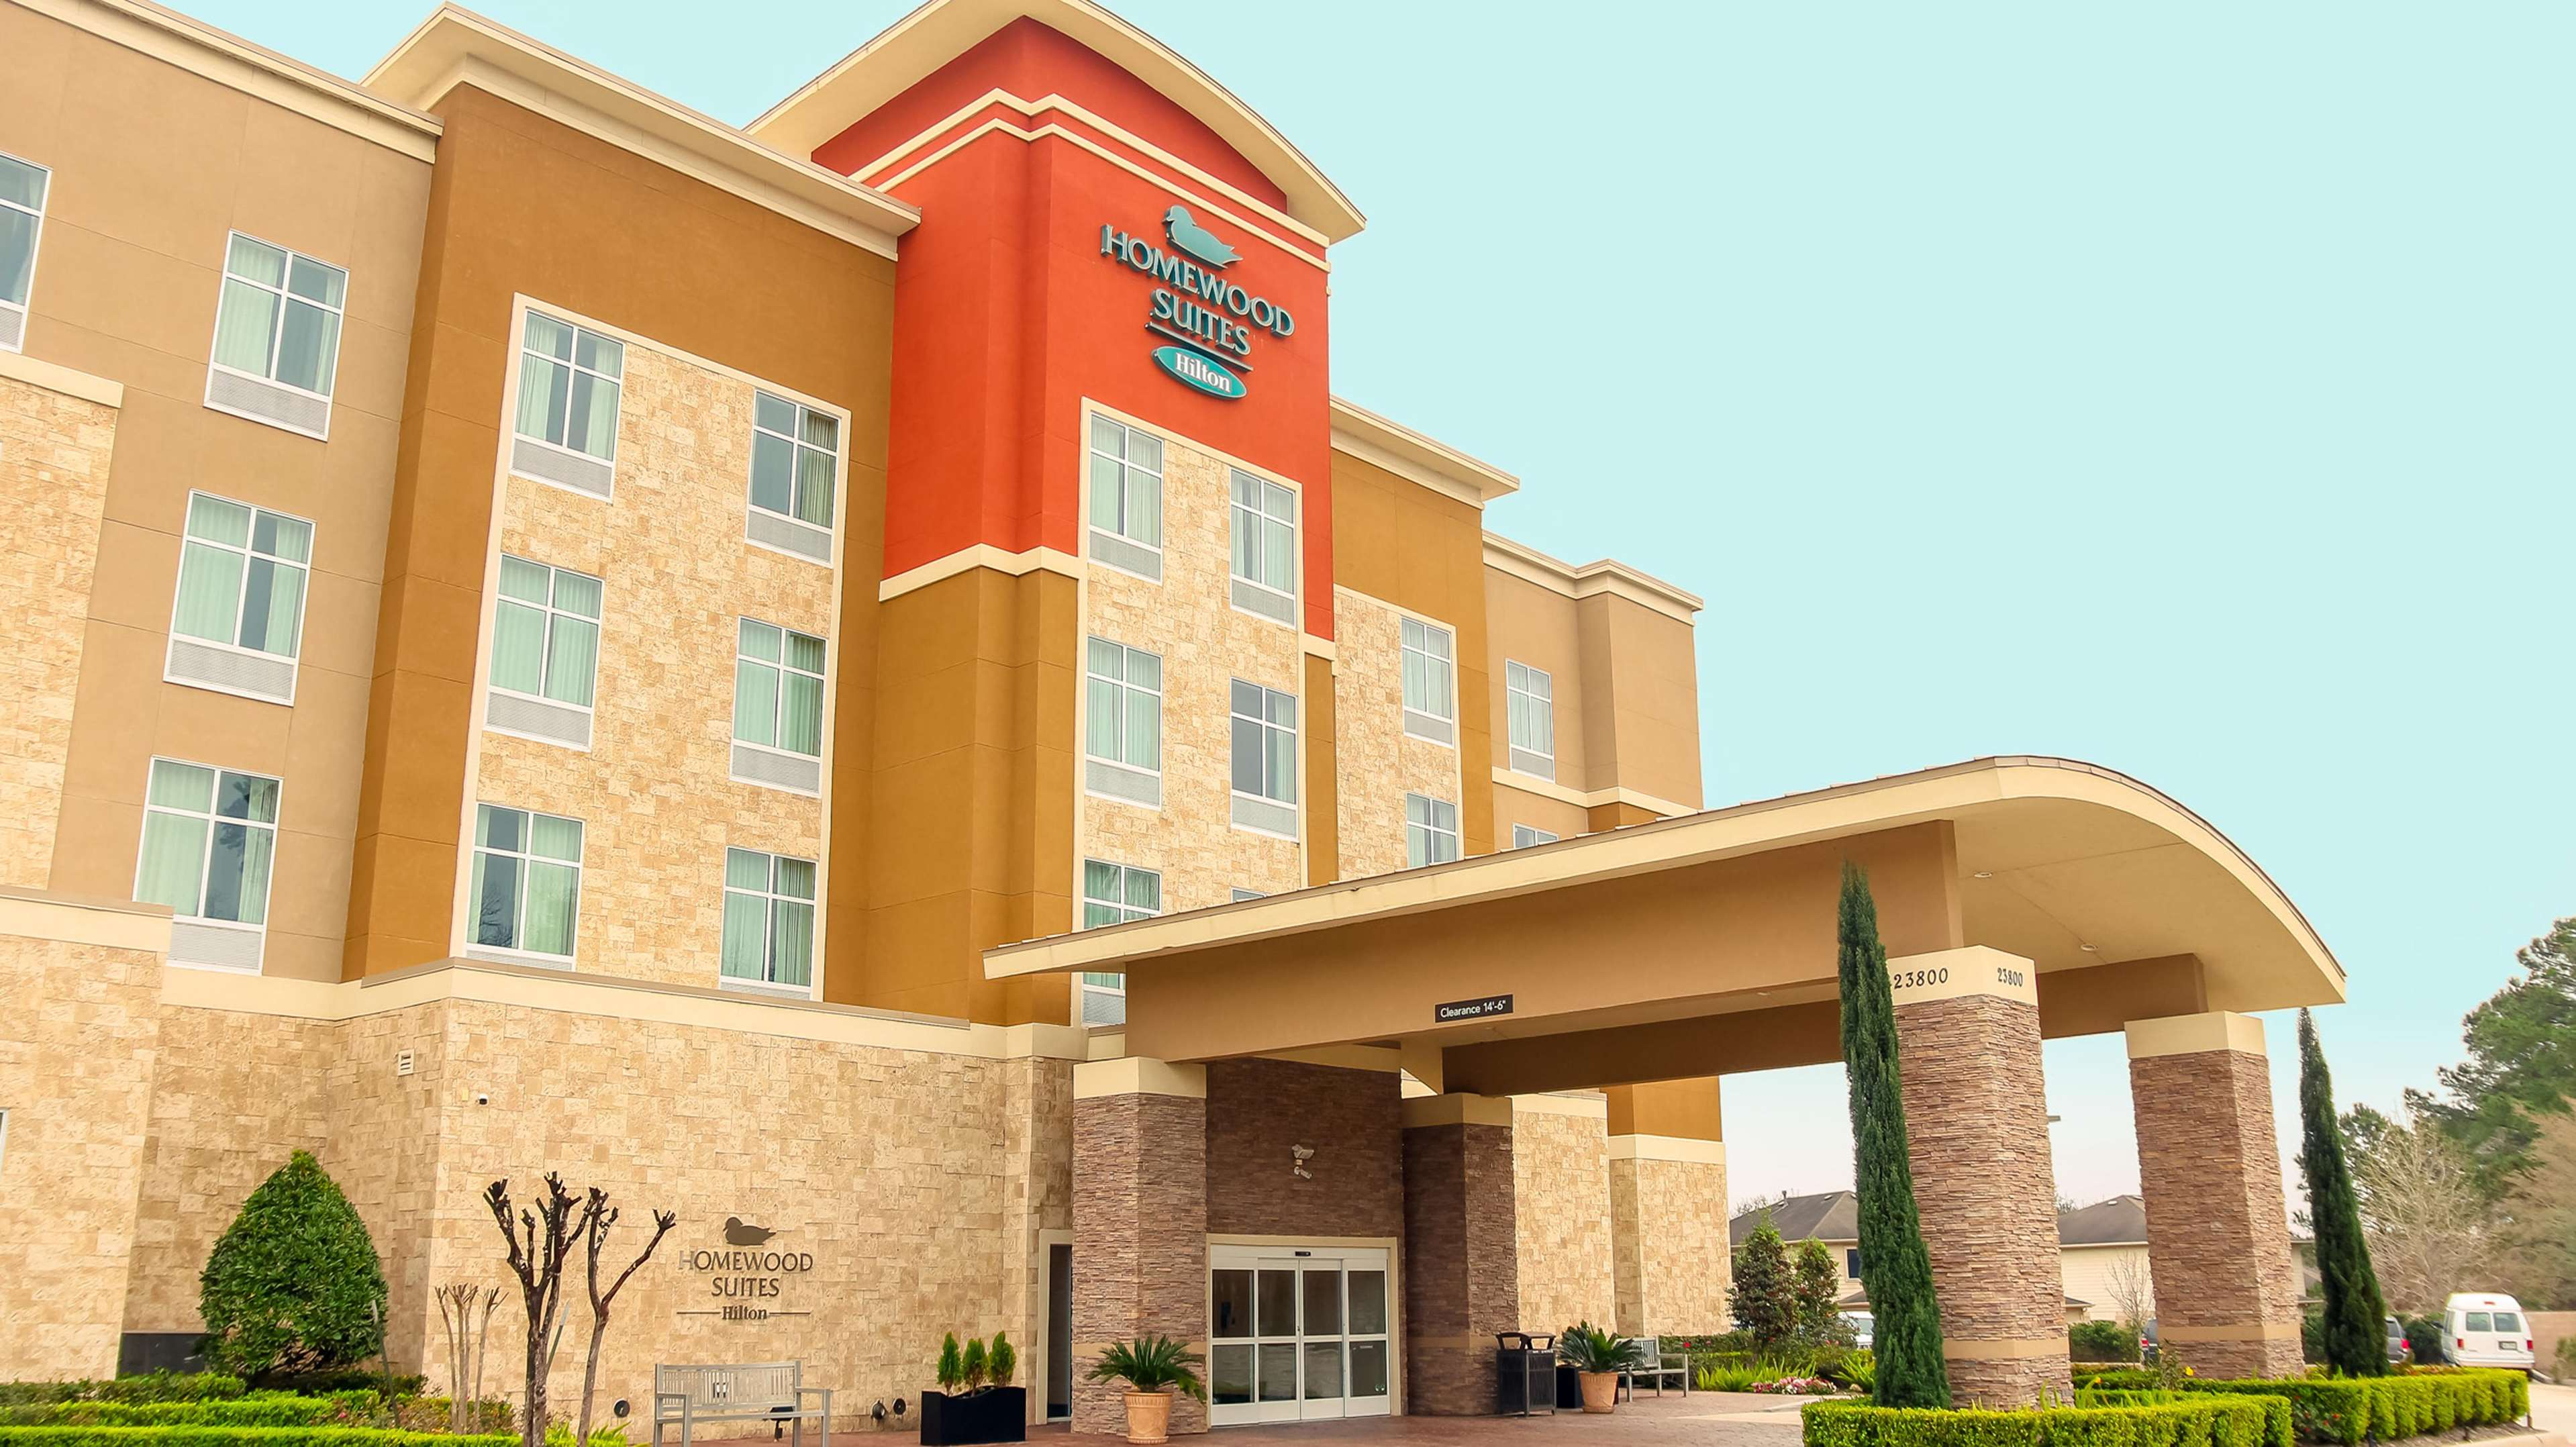 Homewood Suites by Hilton North Houston/Spring image 3